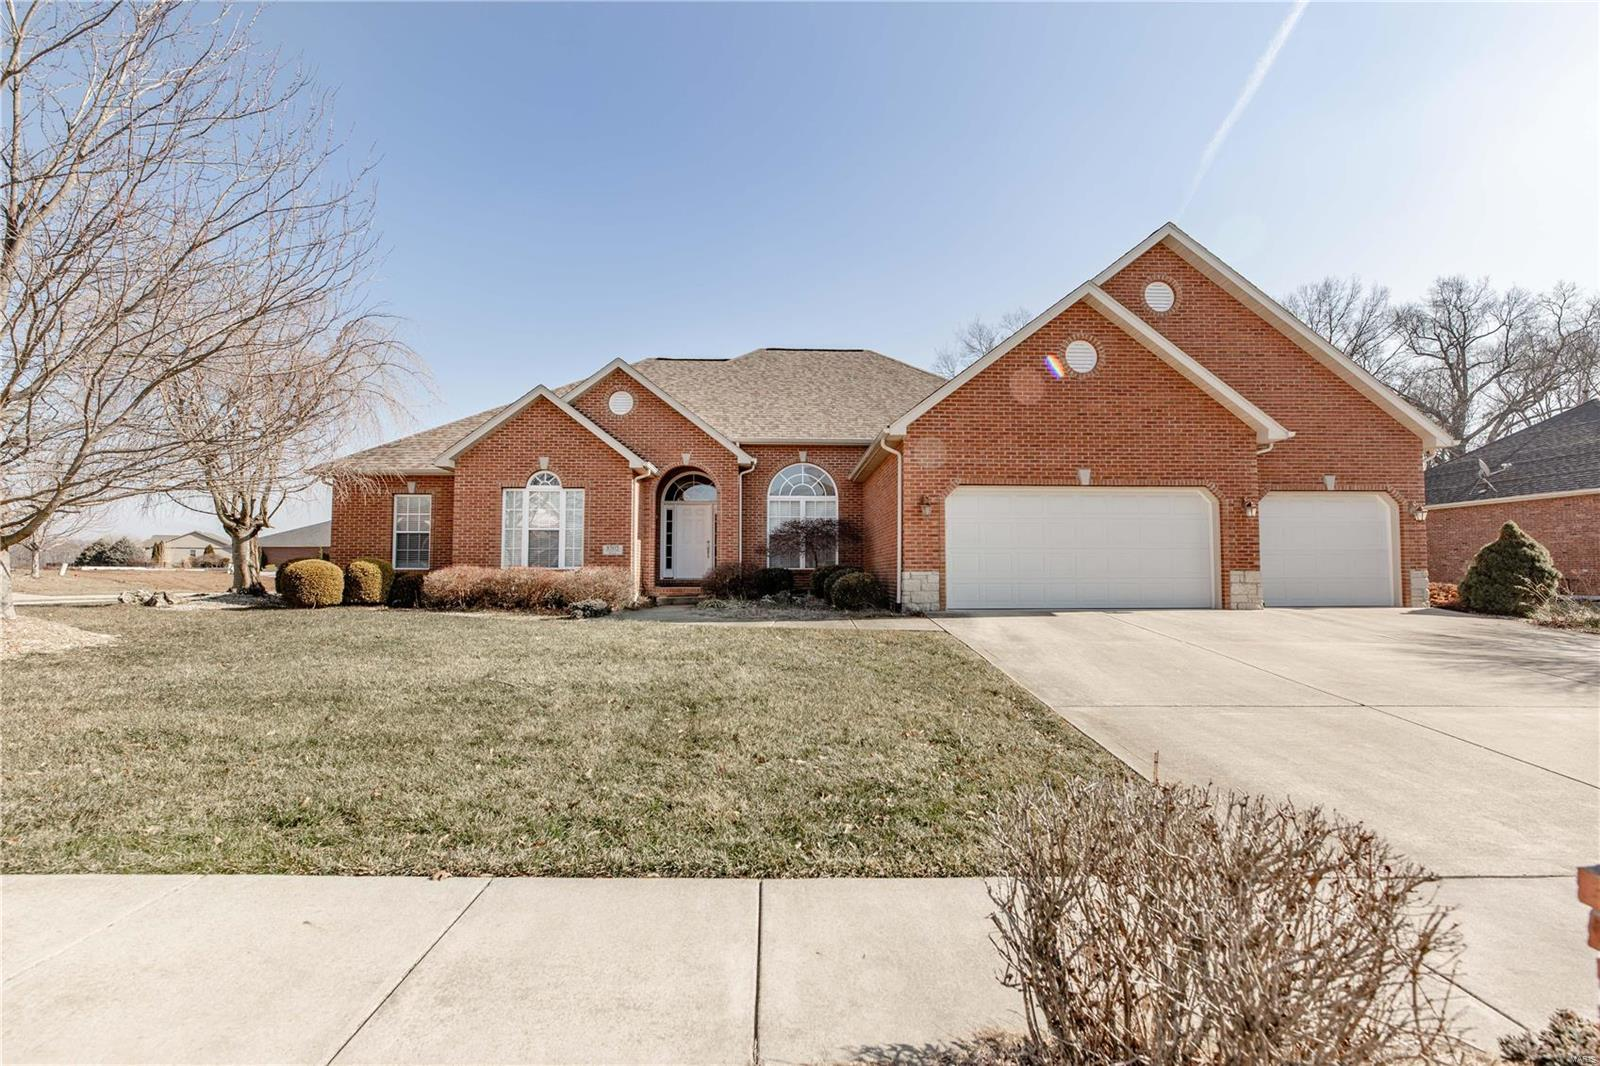 8505 Treybrooke Place Property Photo - O'Fallon, IL real estate listing